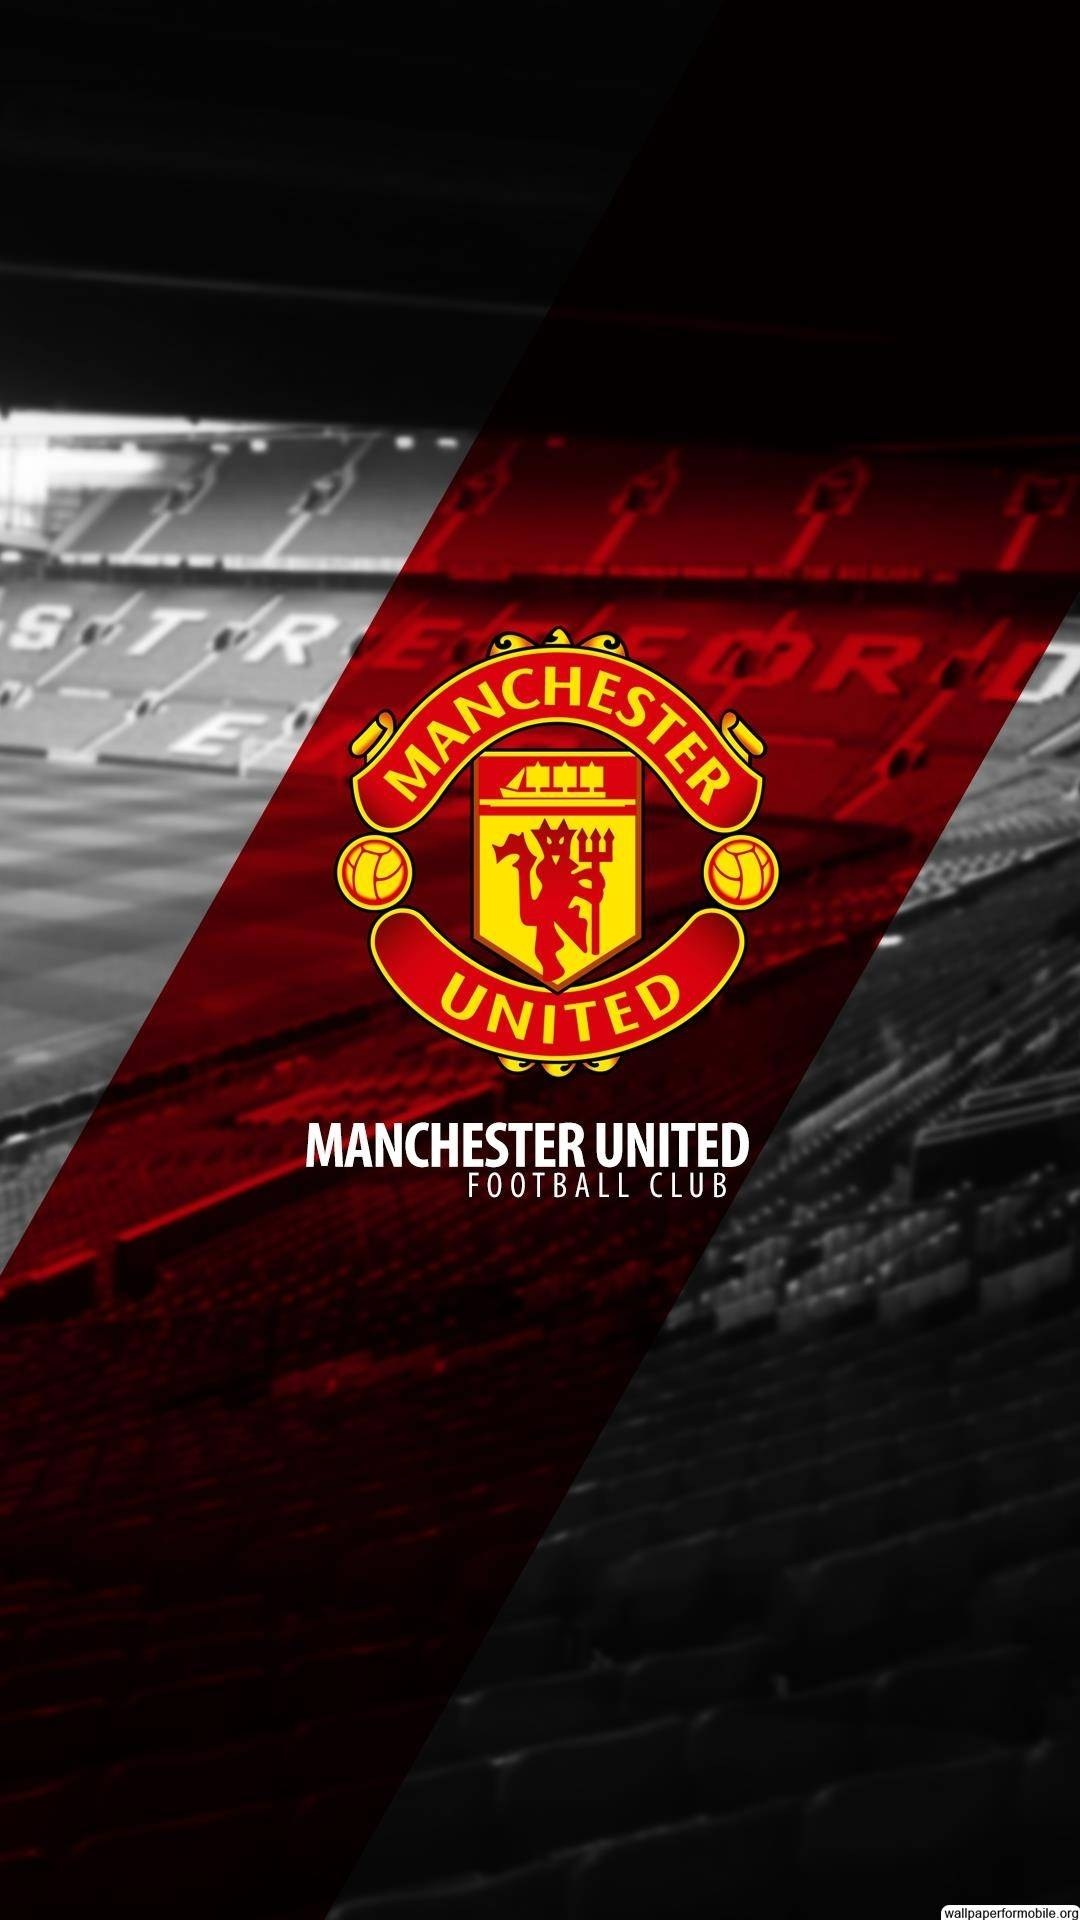 download manchester united wallpaper hd backgrounds download itl cat download manchester united wallpaper